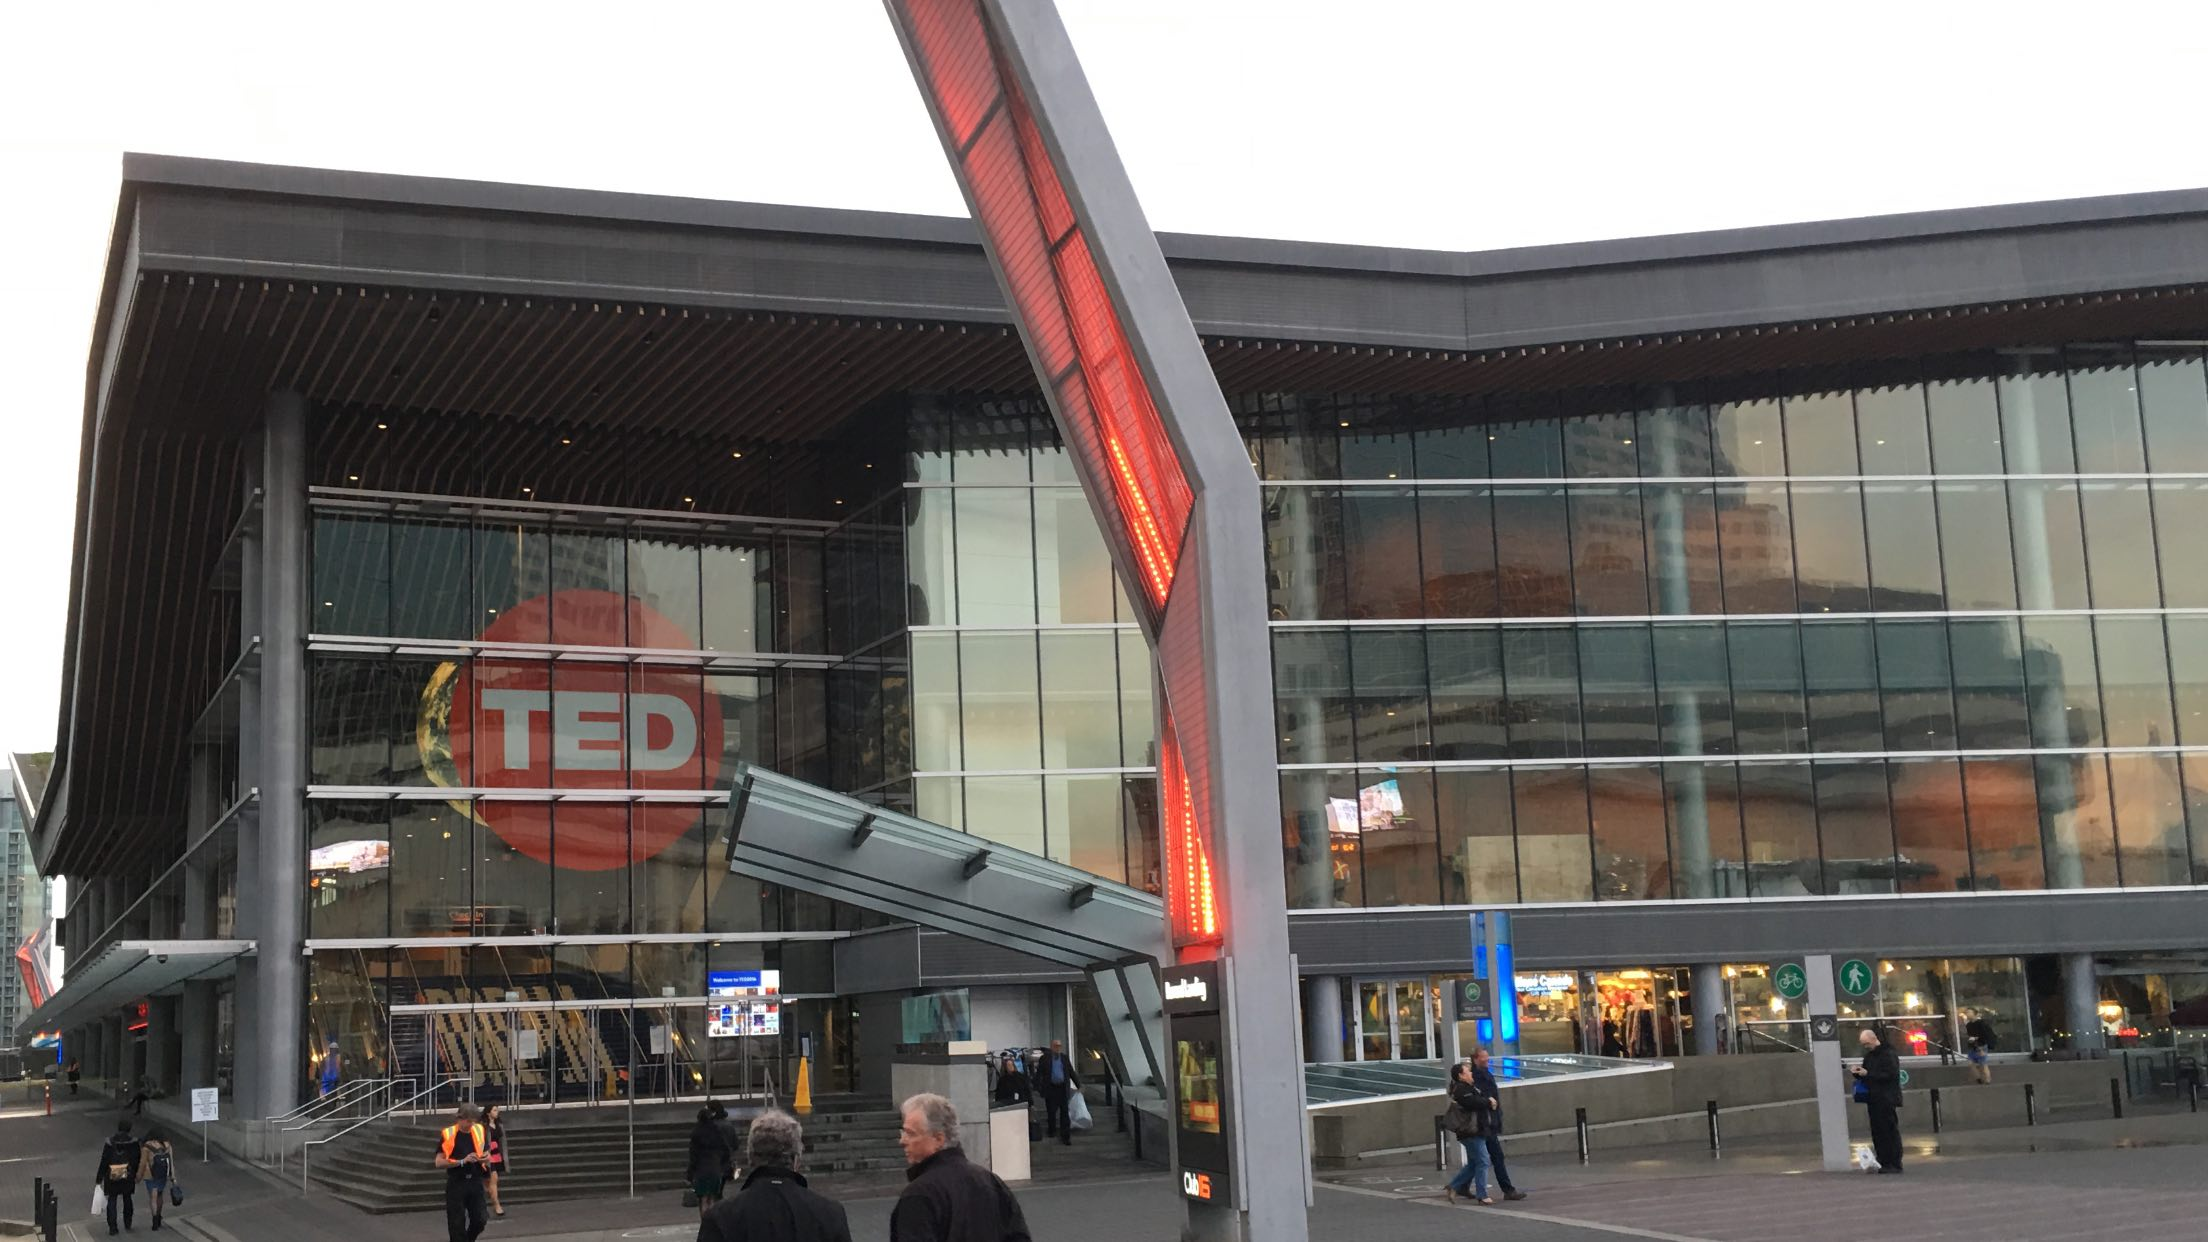 photo of TED2016 conference center